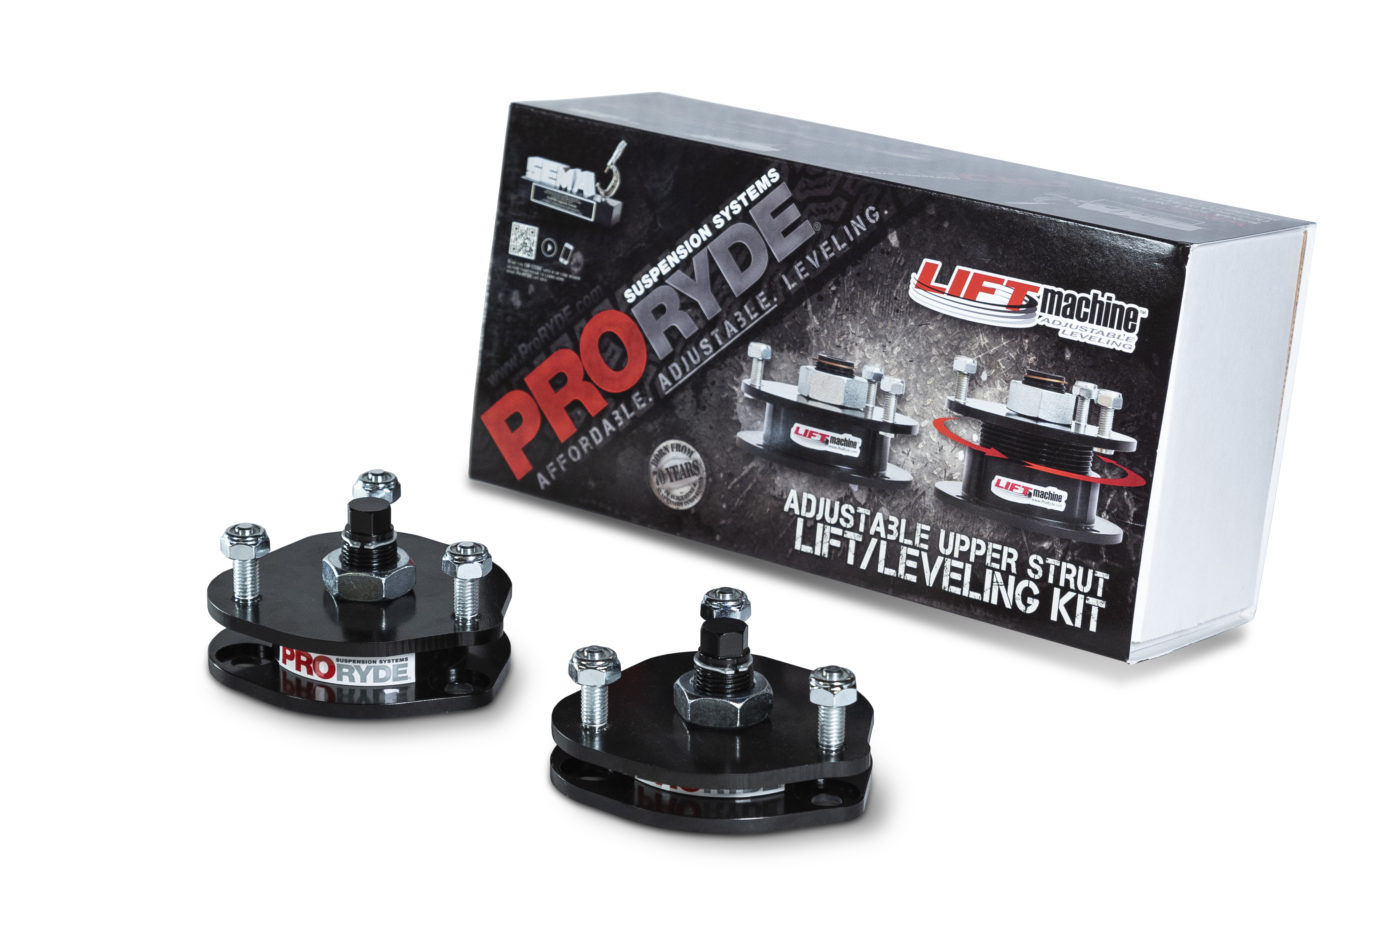 RAM LD 1500 4WD & DODGE DAKOTA ADJUSTABLE FRONT LIFT LEVELING KIT